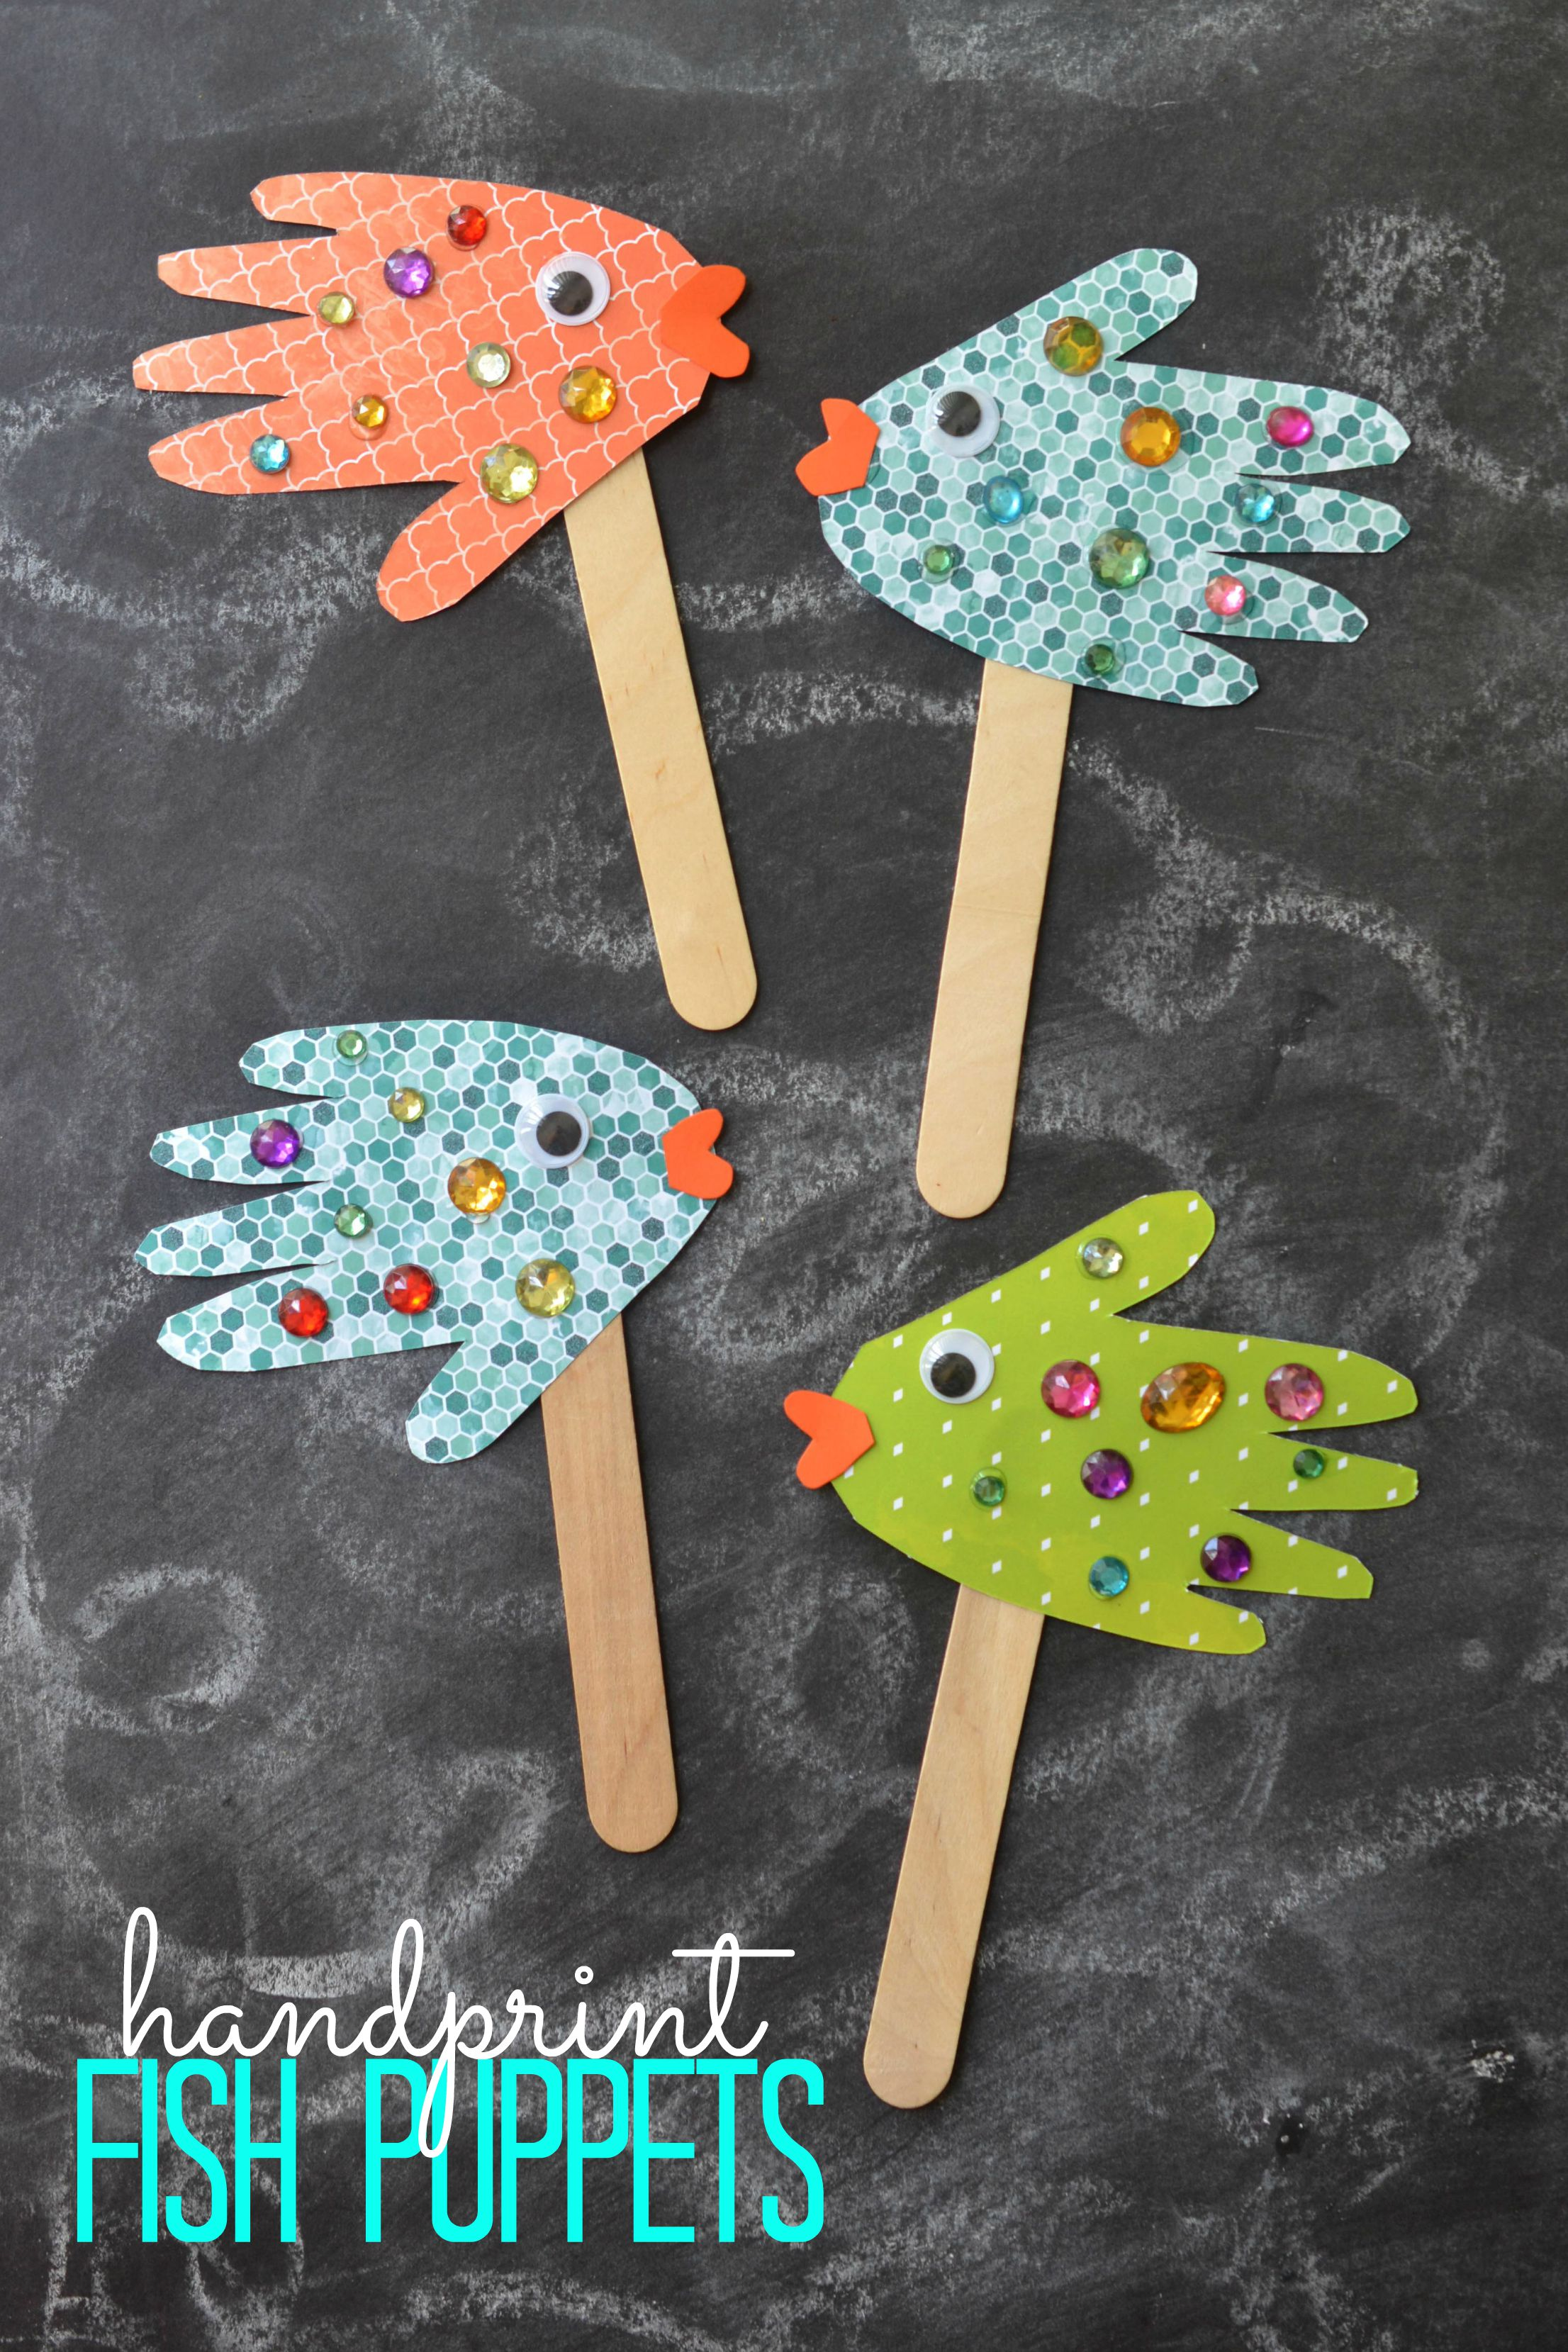 vbs craft ideas submerged under the sea theme